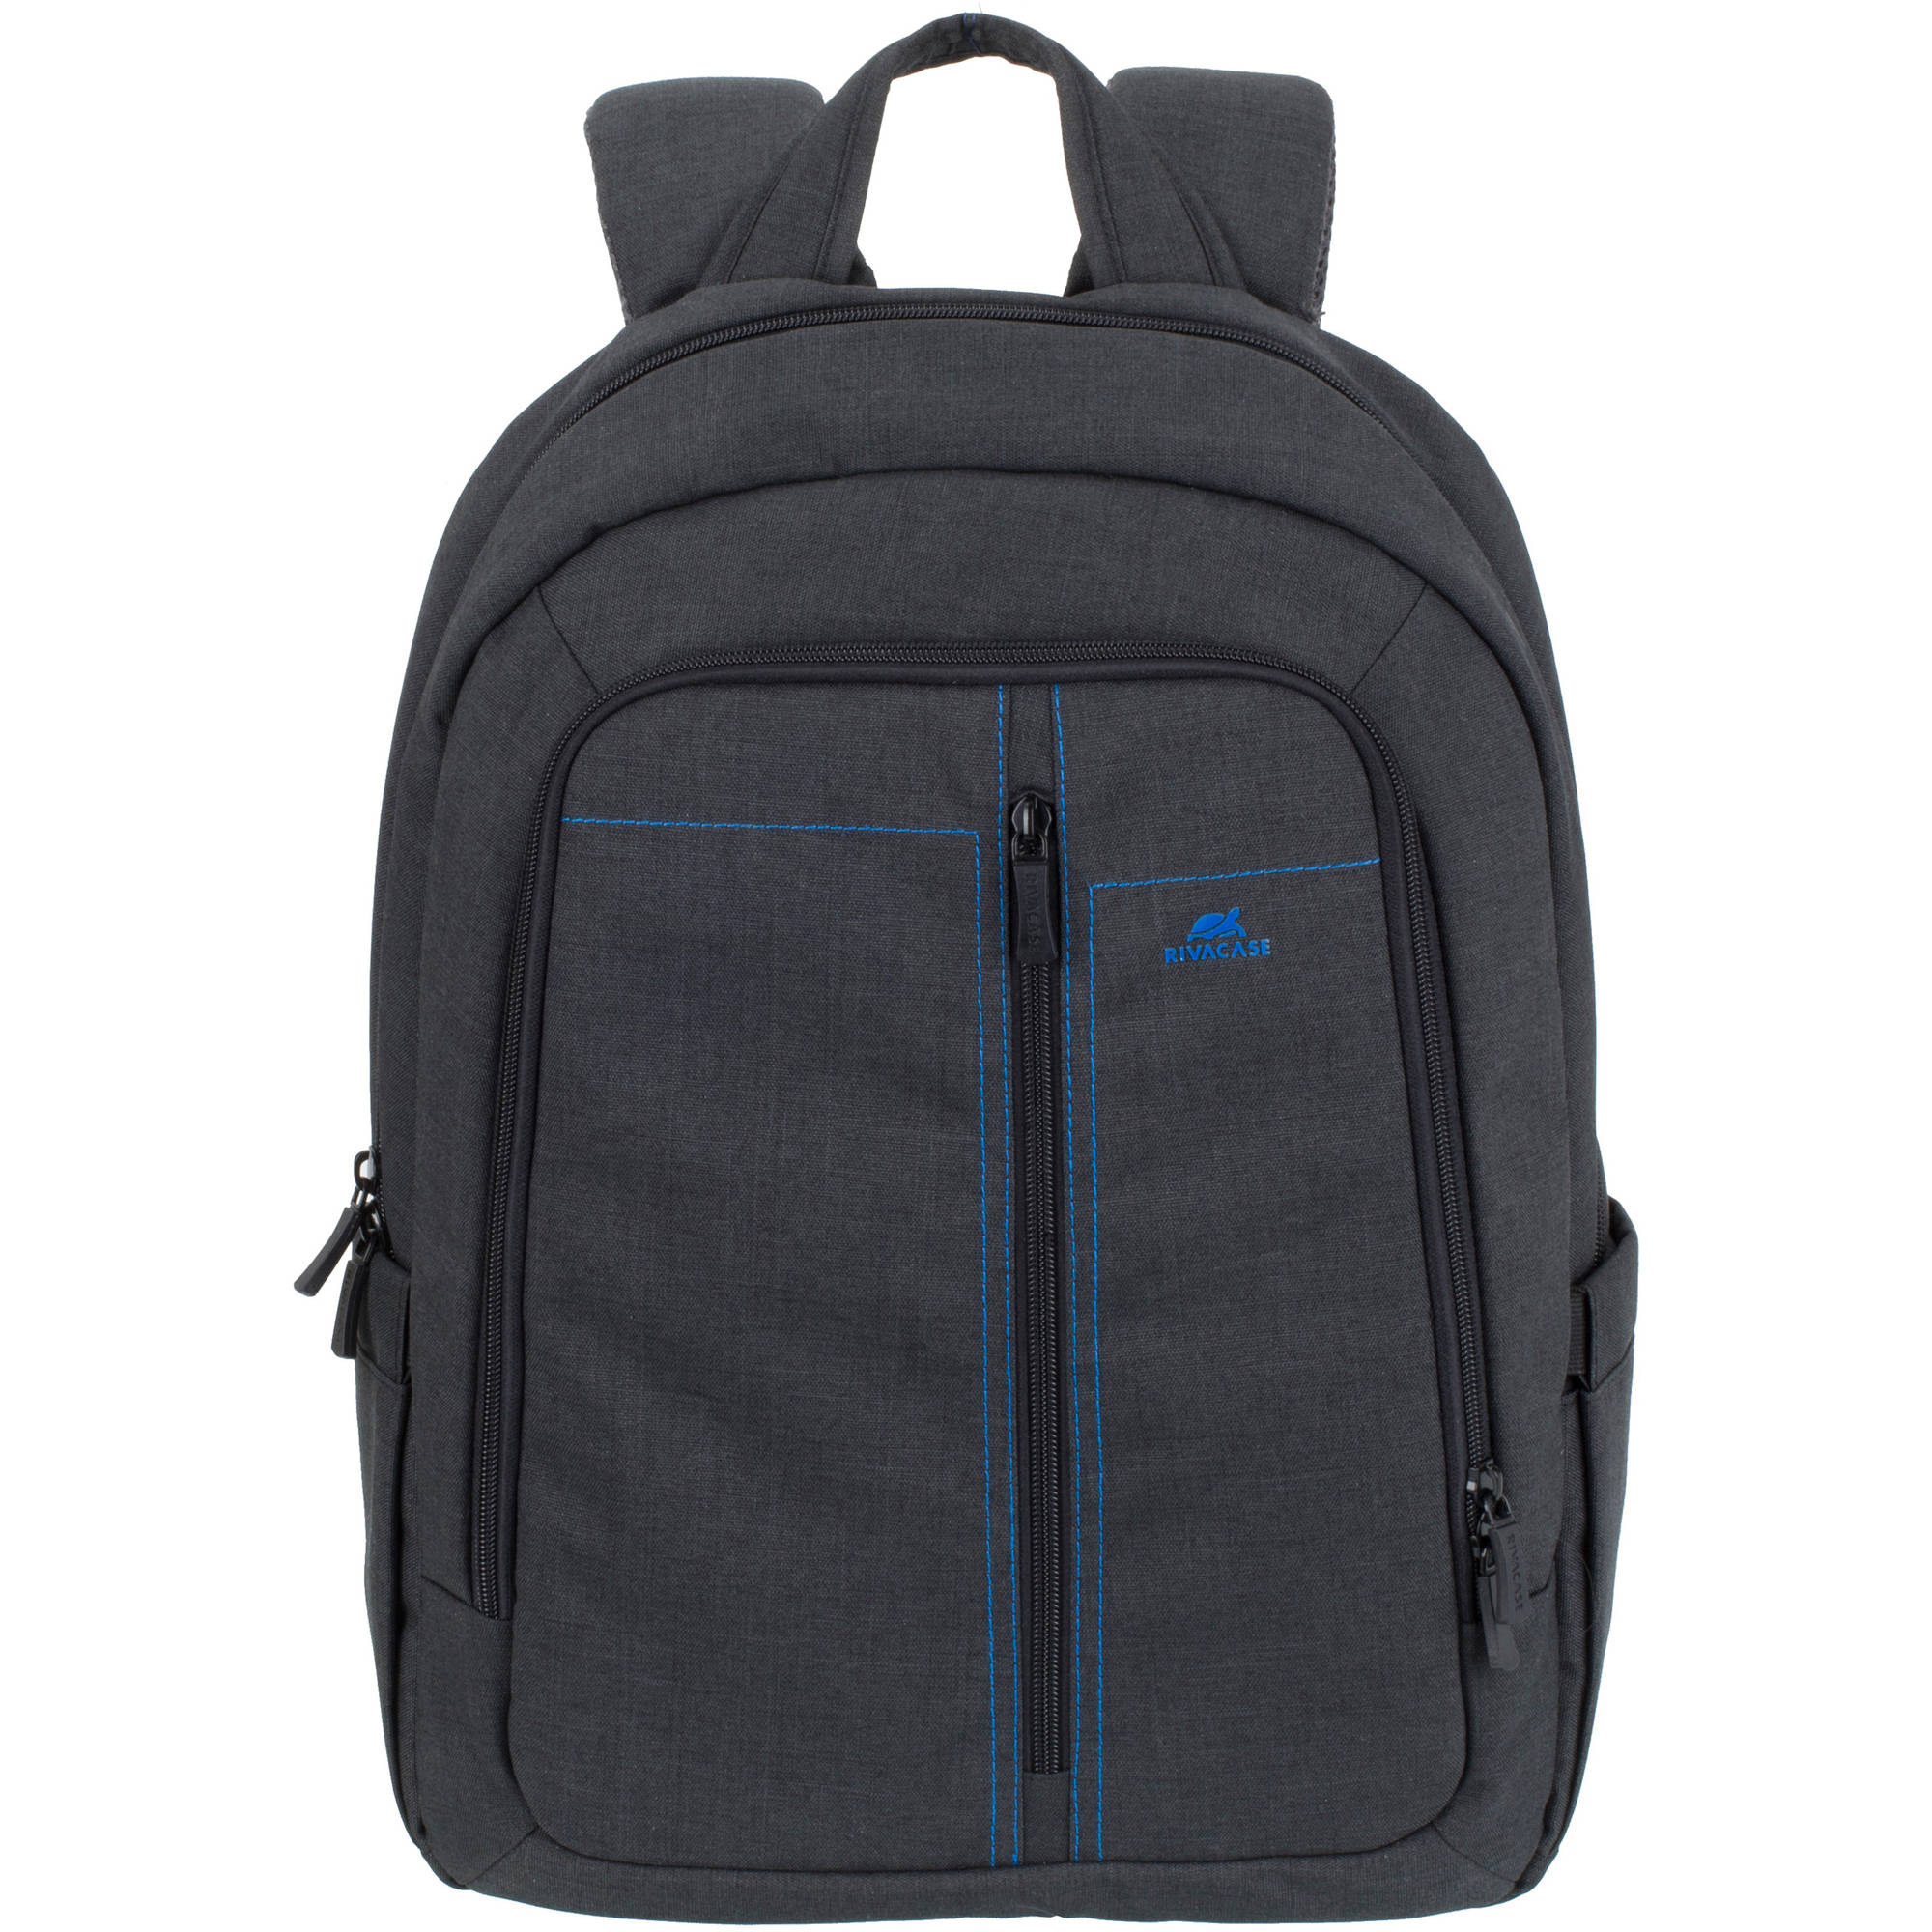 "RIVACASE 15.6"" Laptop Backpack 7560, Black"